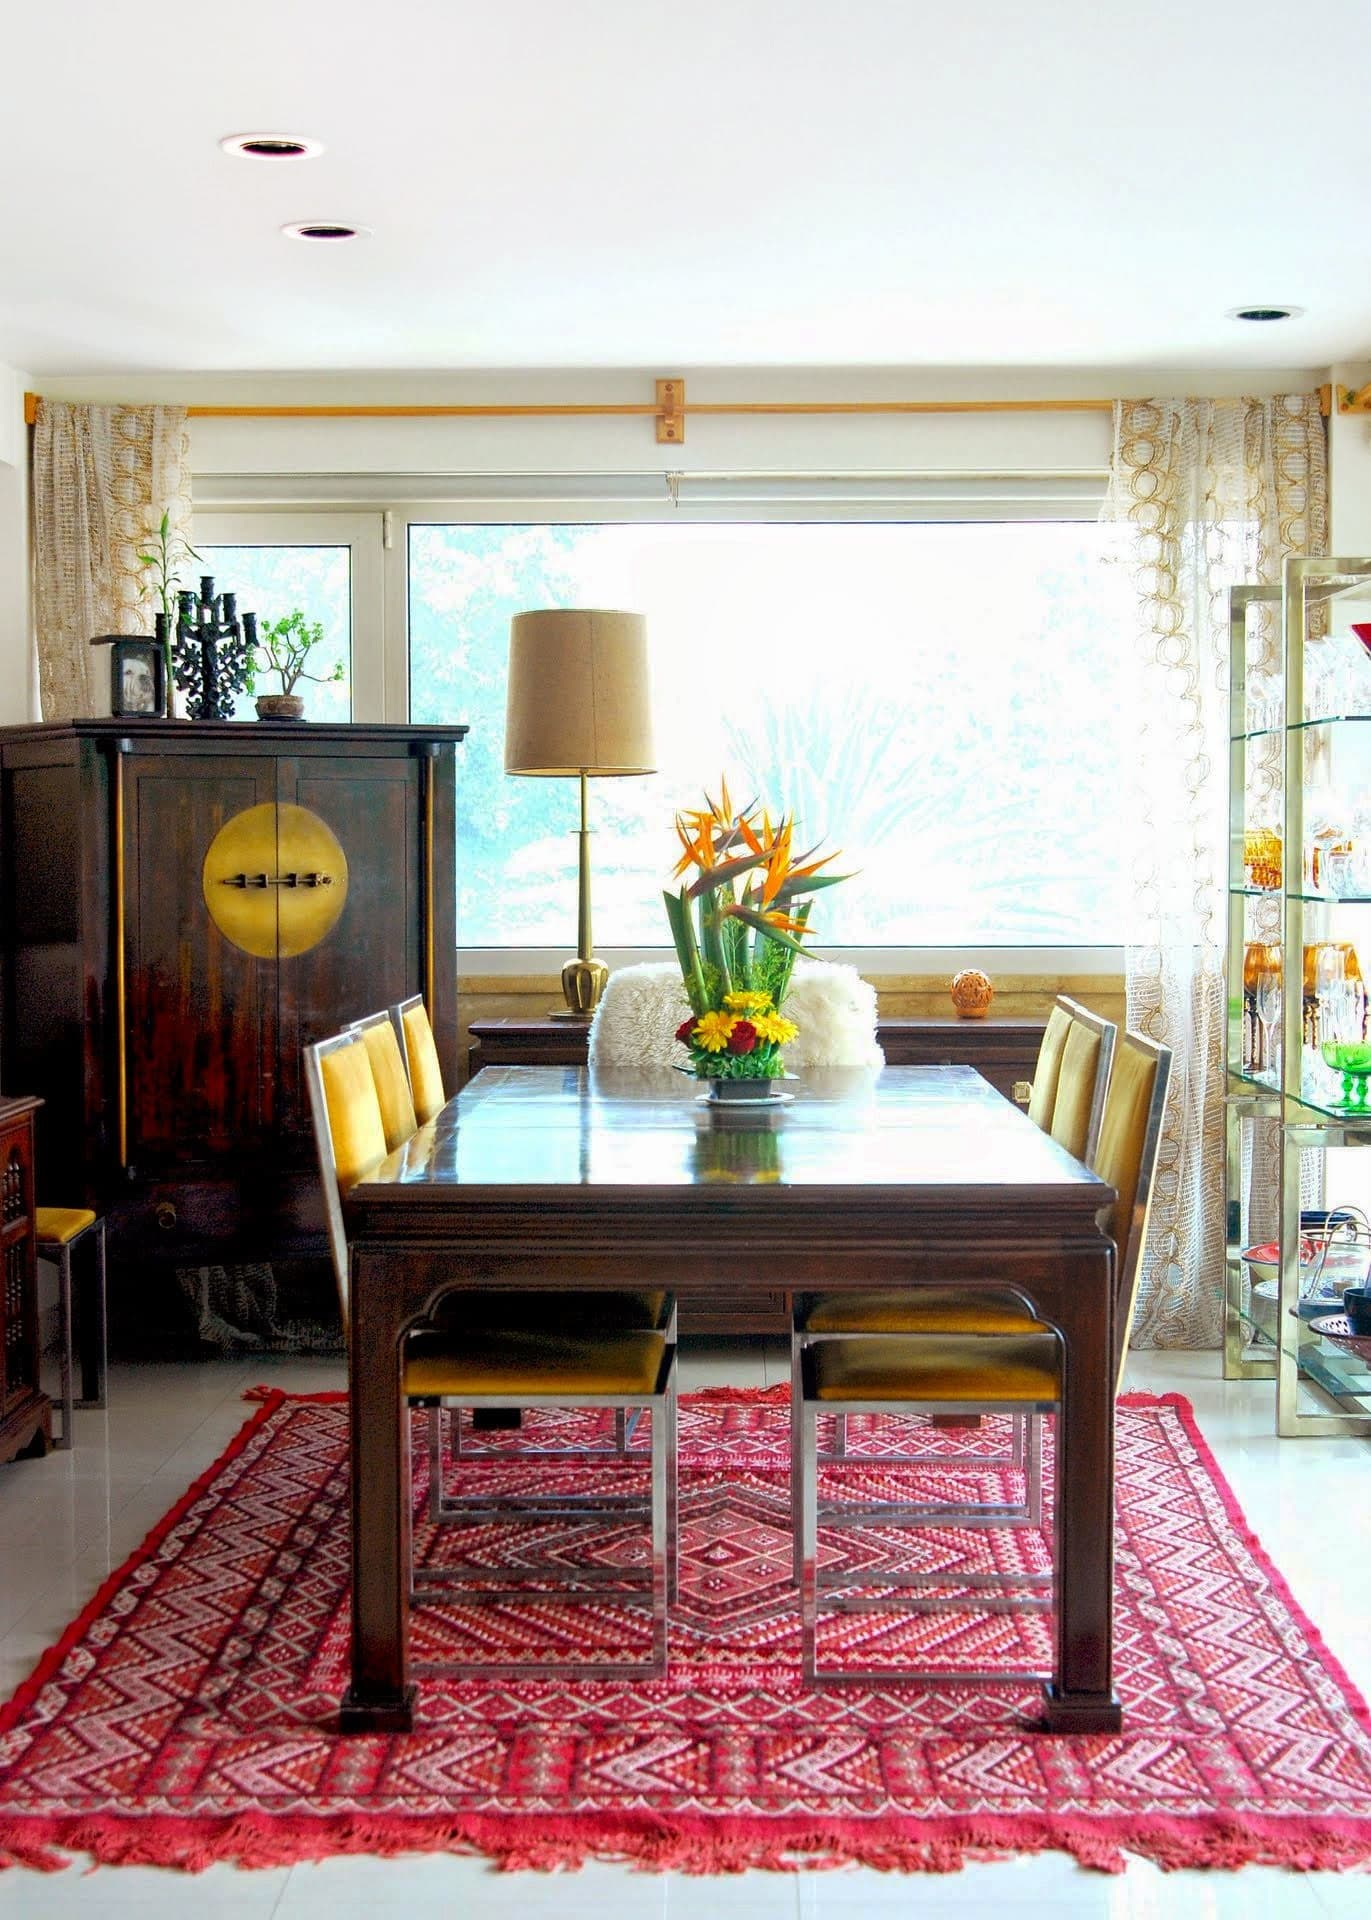 House Tour: A Global,1970s Style Mexico City Apartment ...